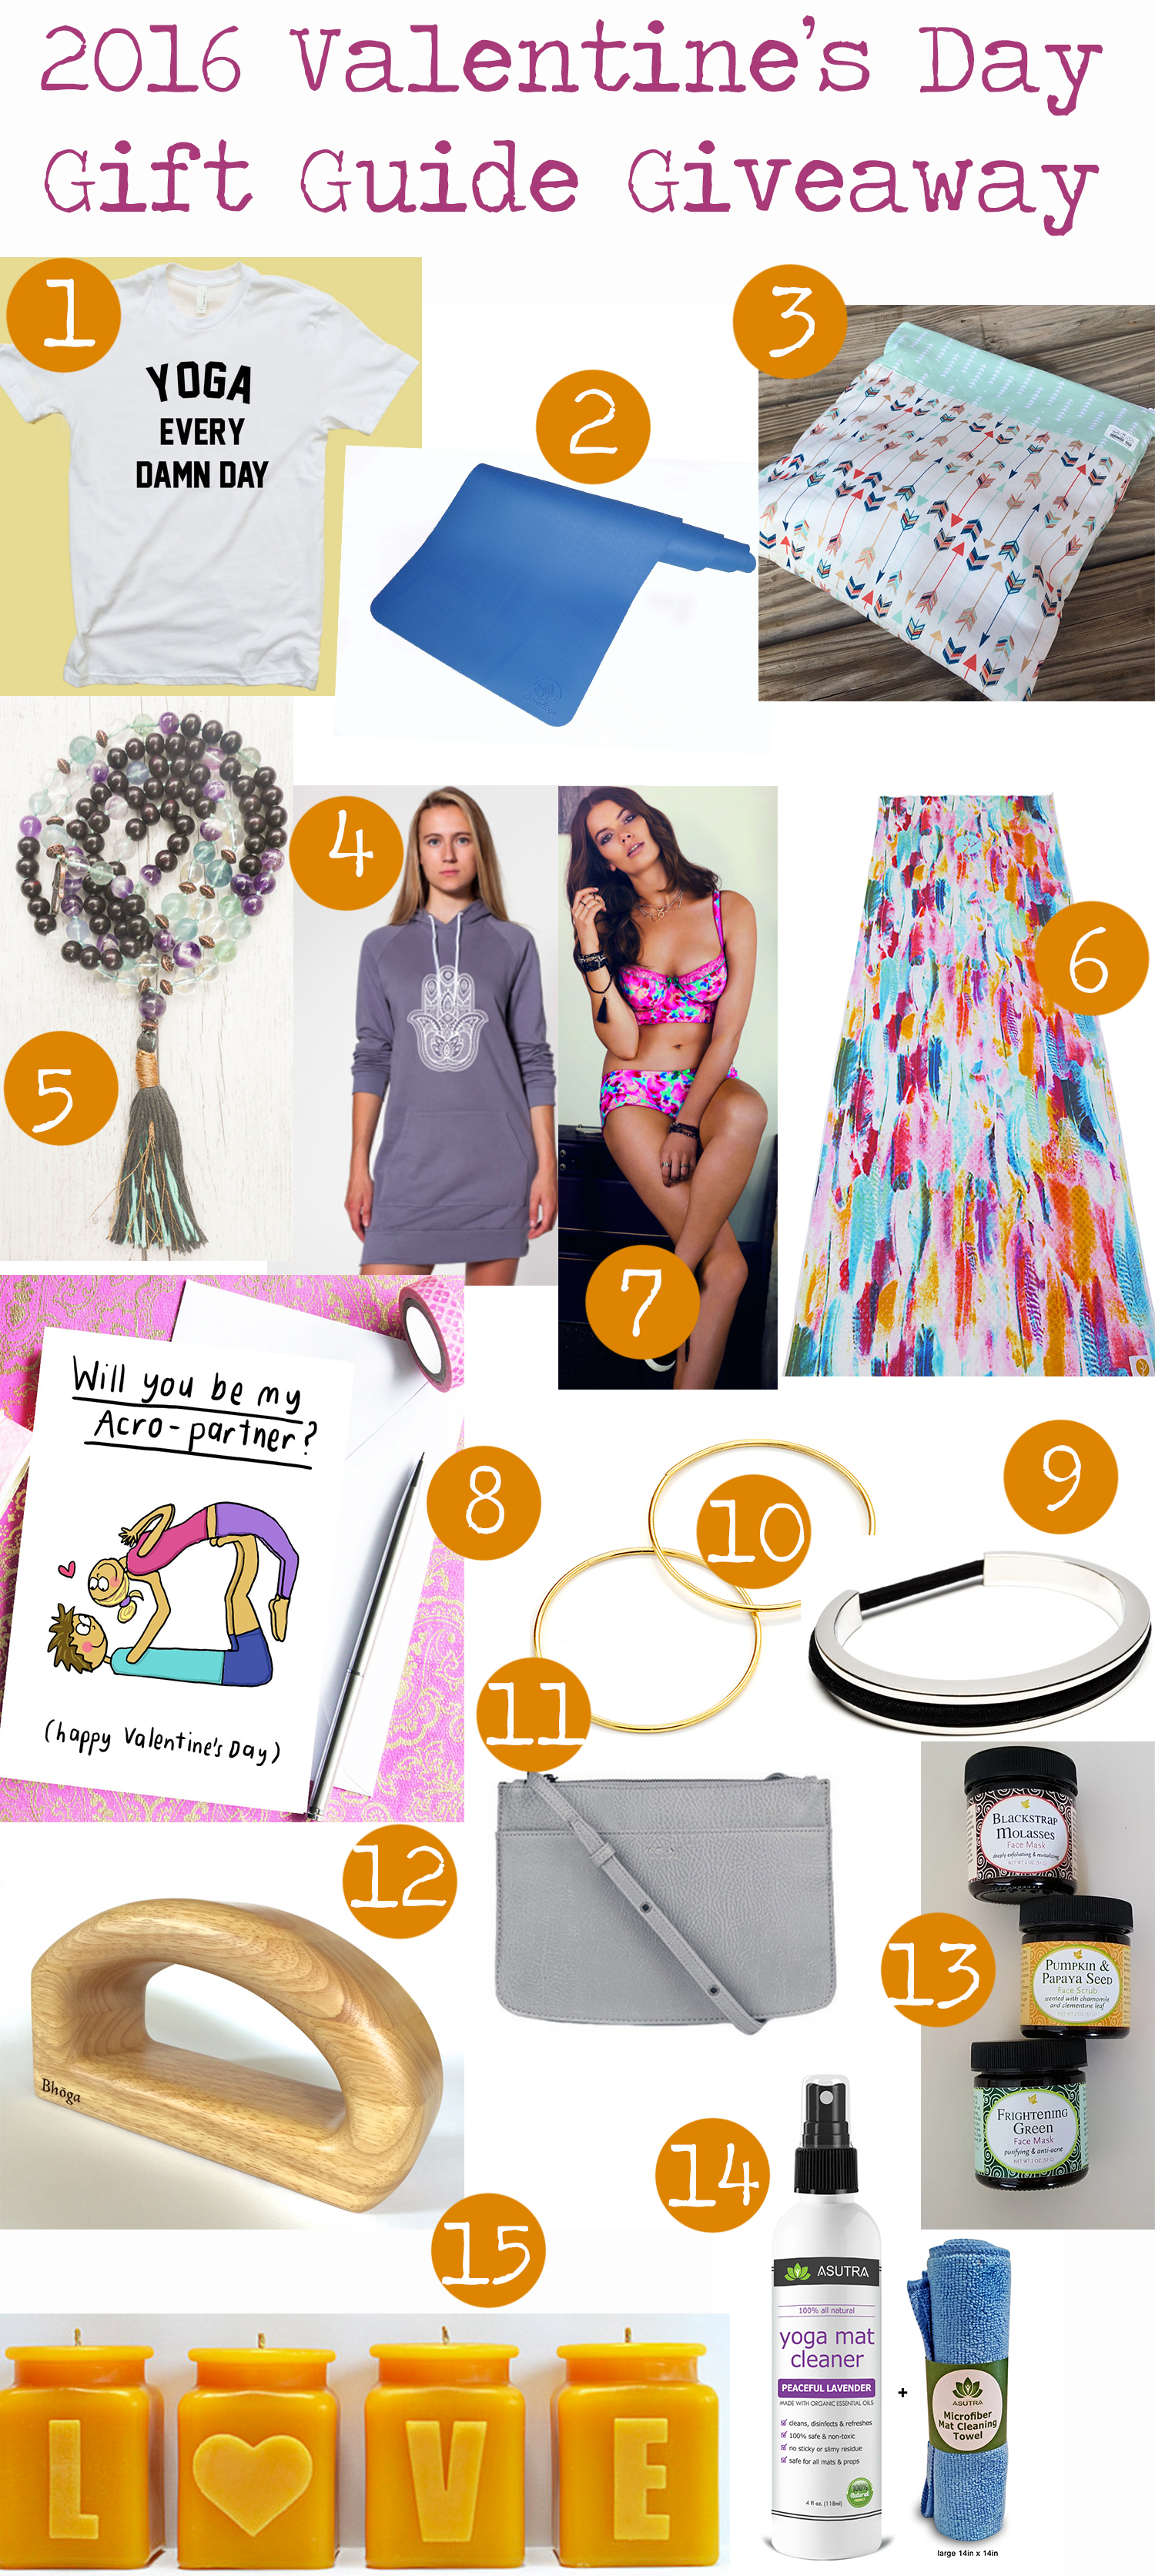 2016 Valentine's Day Gift Guide Giveaway